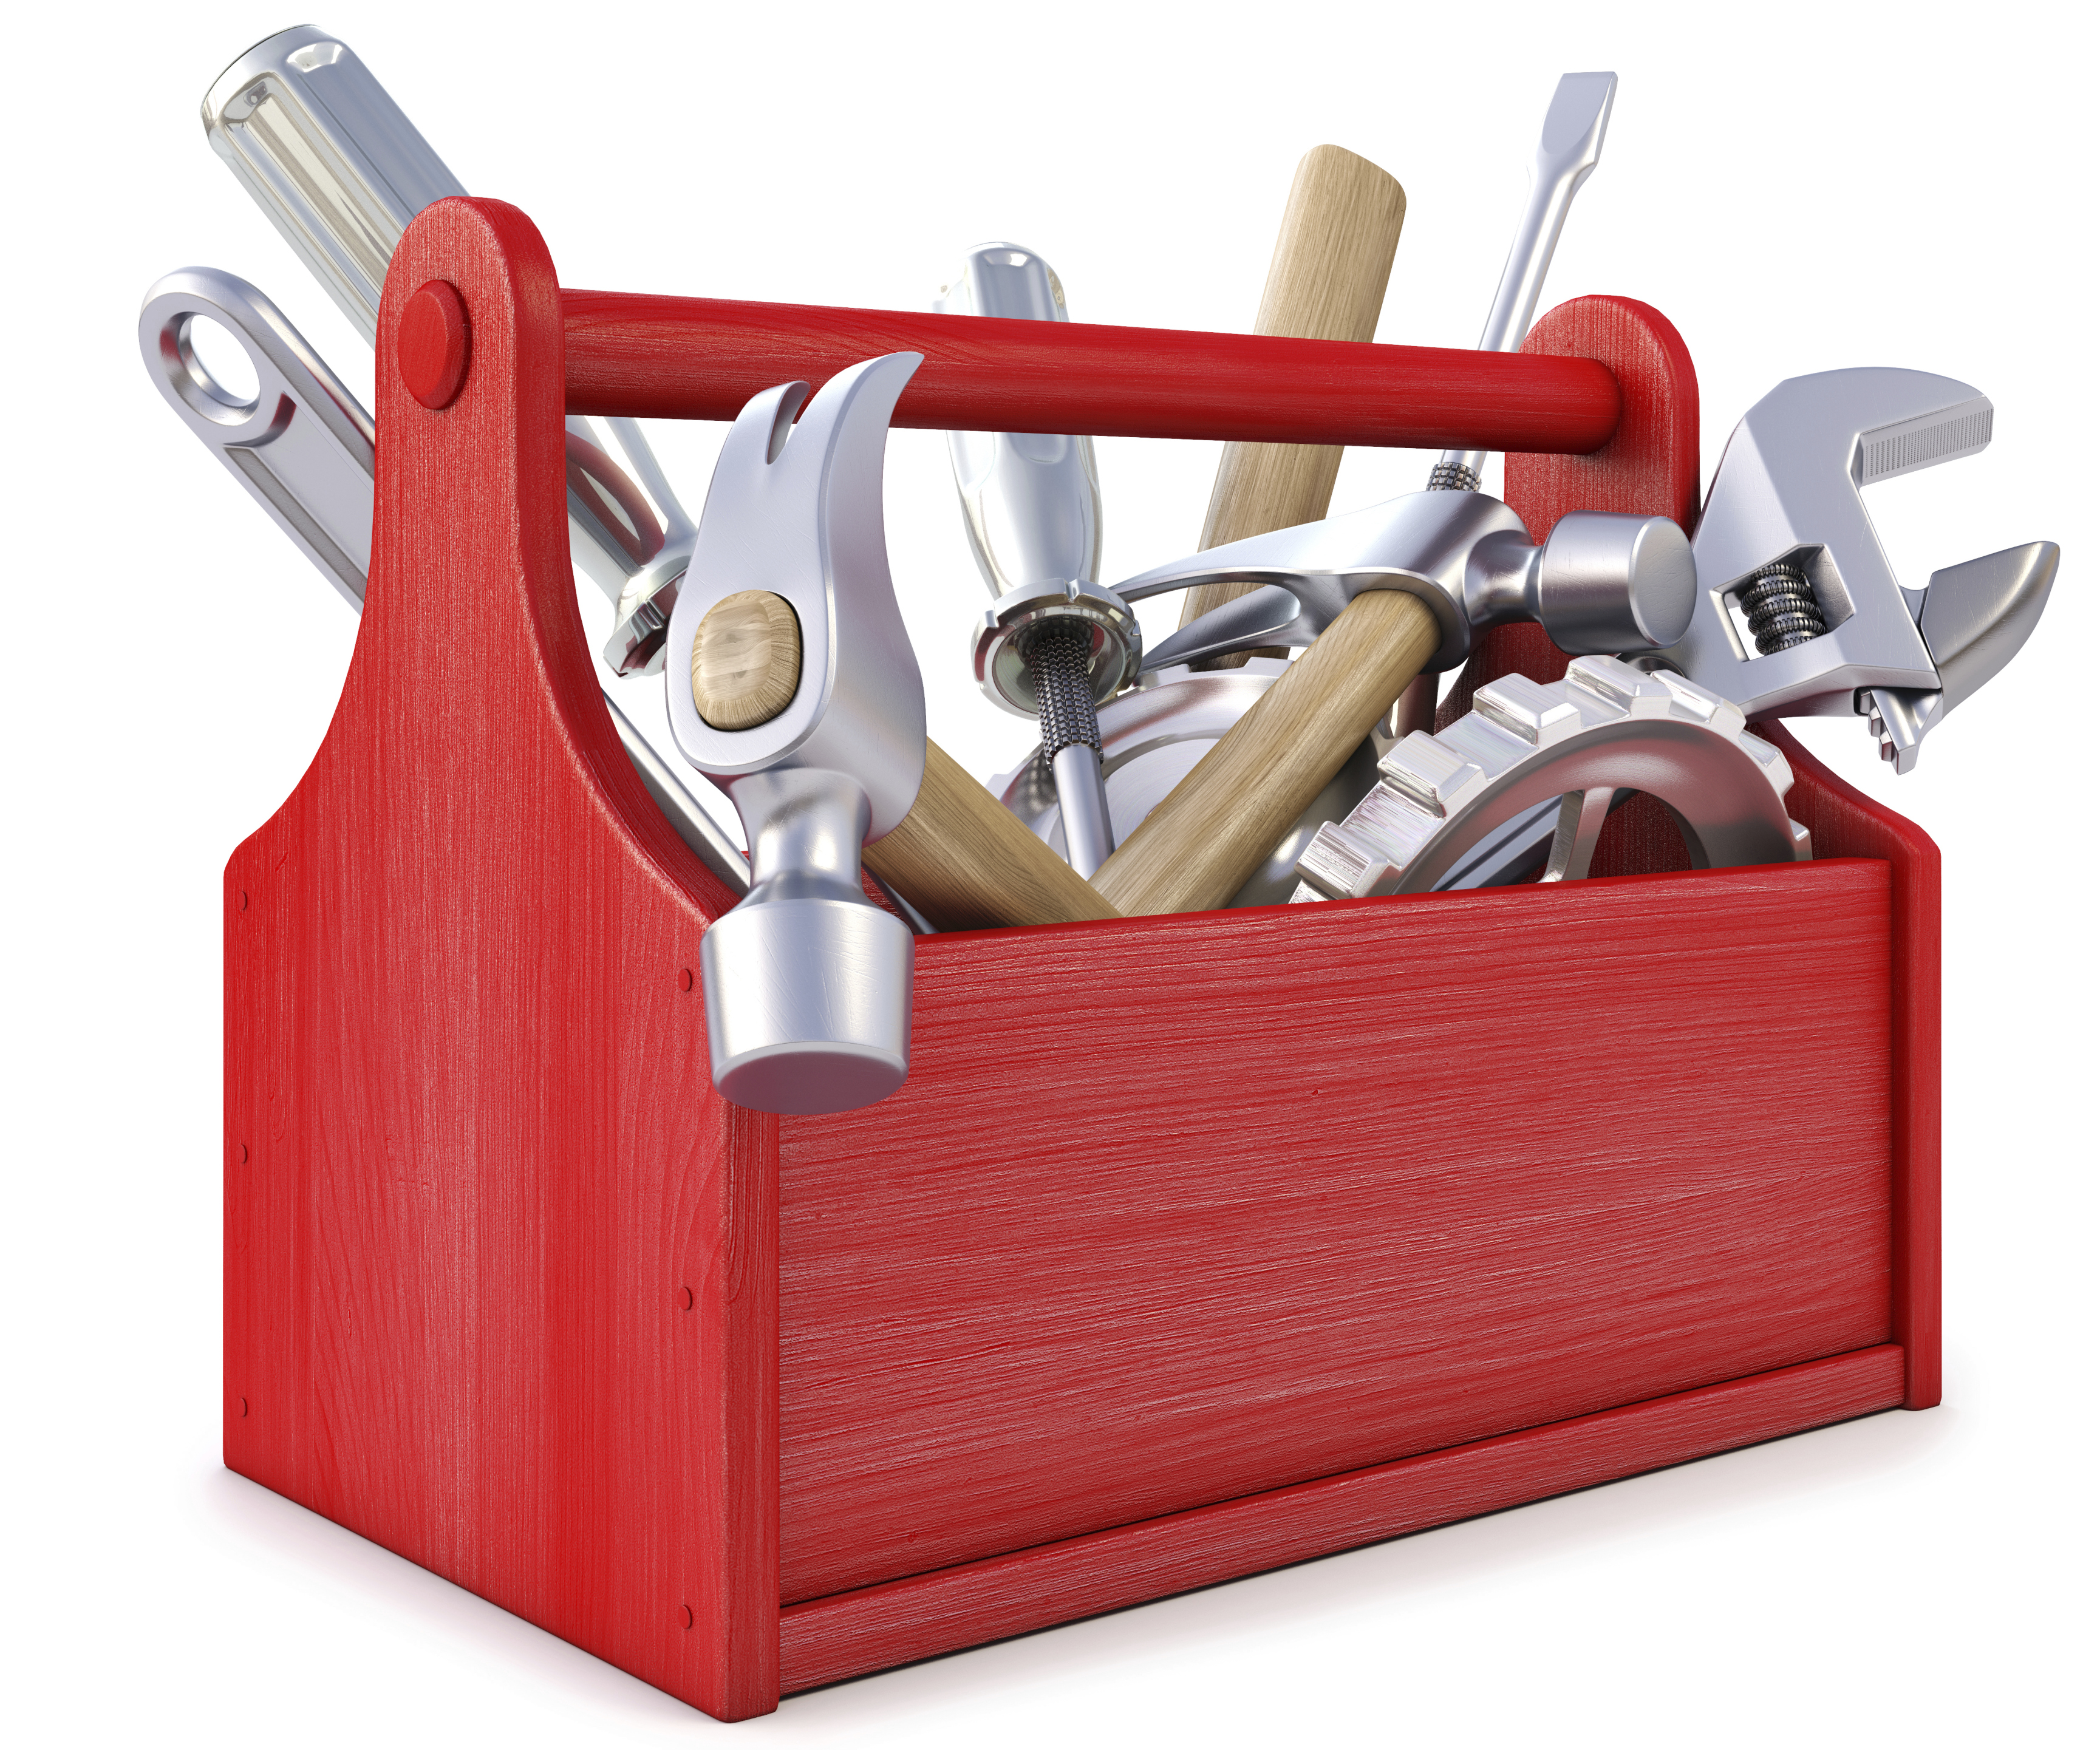 tools marketing trade tech technology inbound tool toolbox box kit advertising basic boxes handyman company